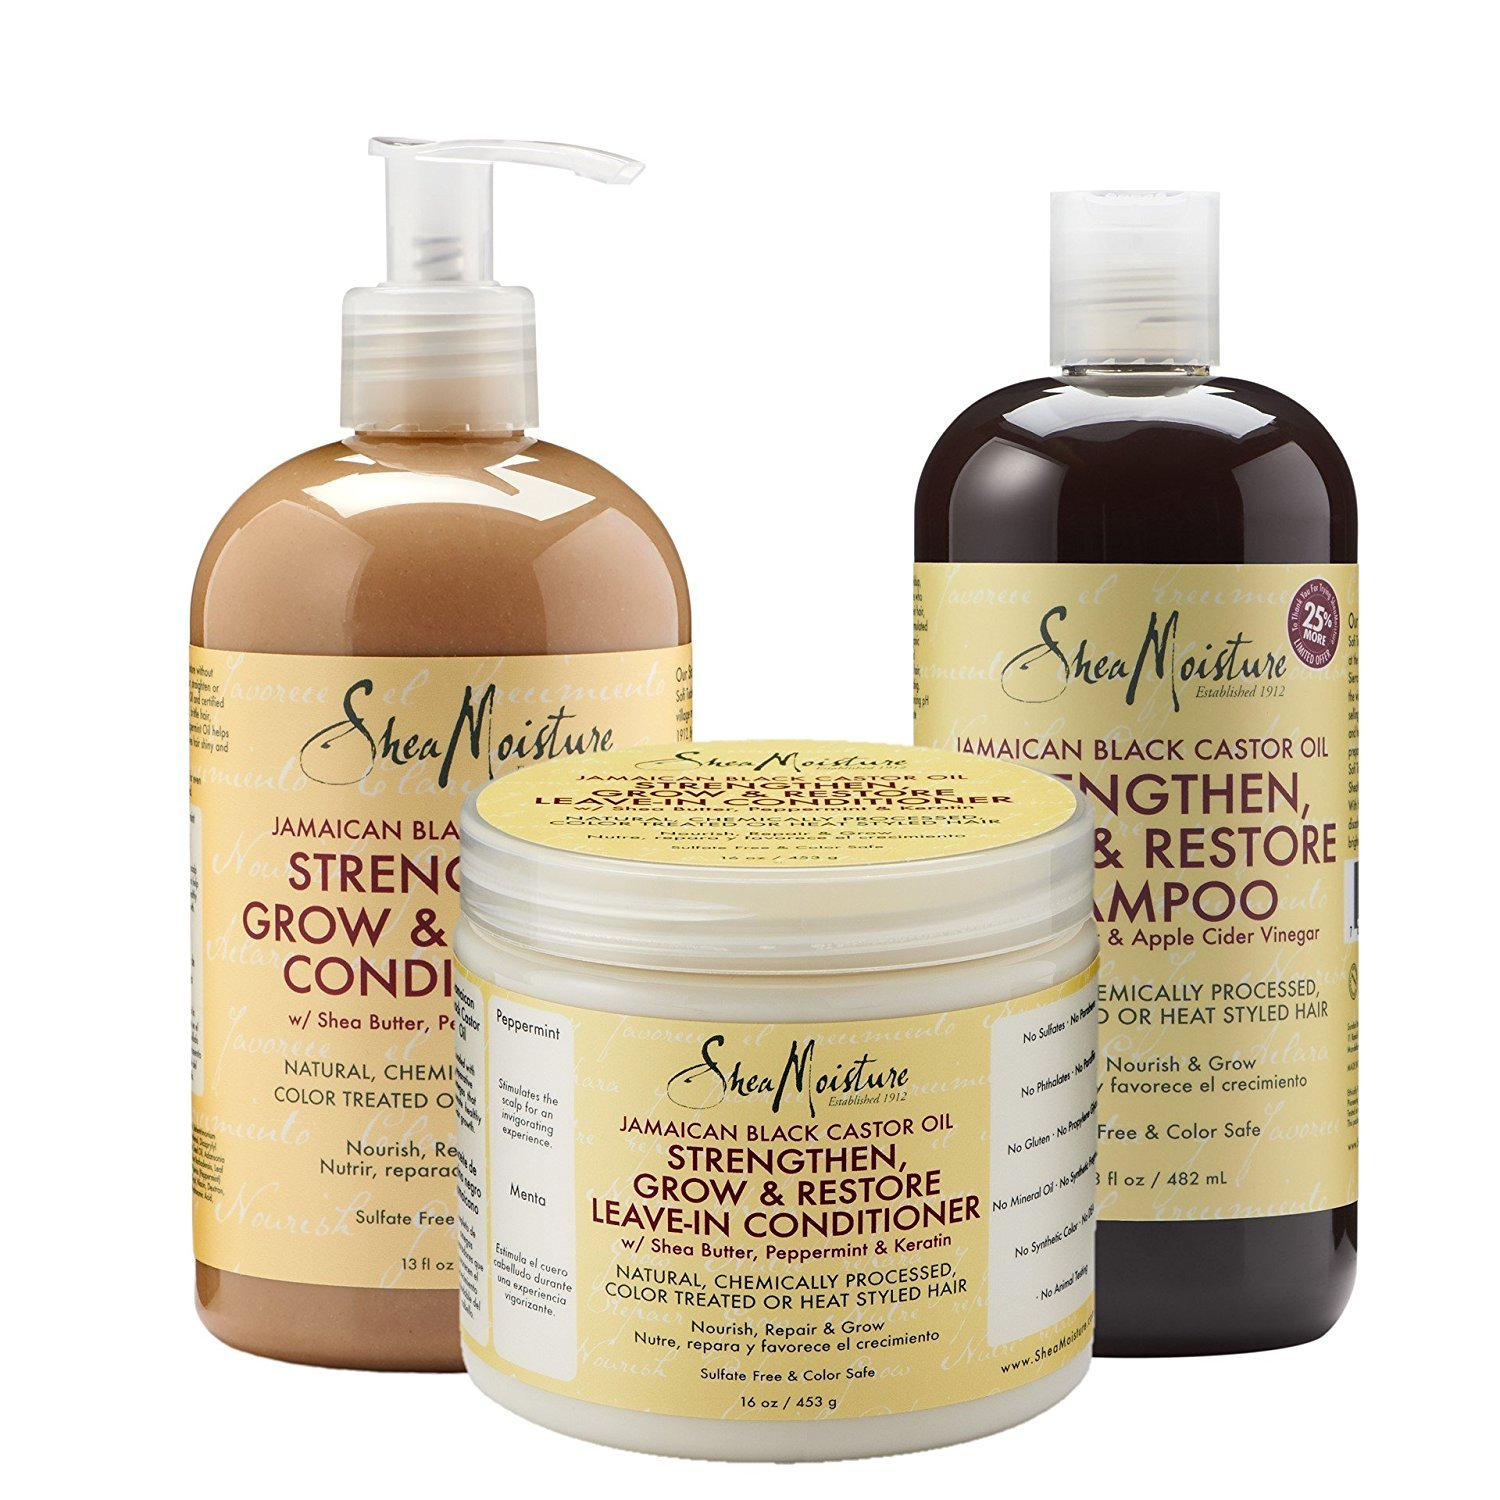 Shea Moisture Jamaican Black Castor Oil Combination Pack – Strengthen, Grow & Restore System – 16.3 oz Shampoo, 13 oz. Conditioner & 16 oz. Leave-In Conditioner